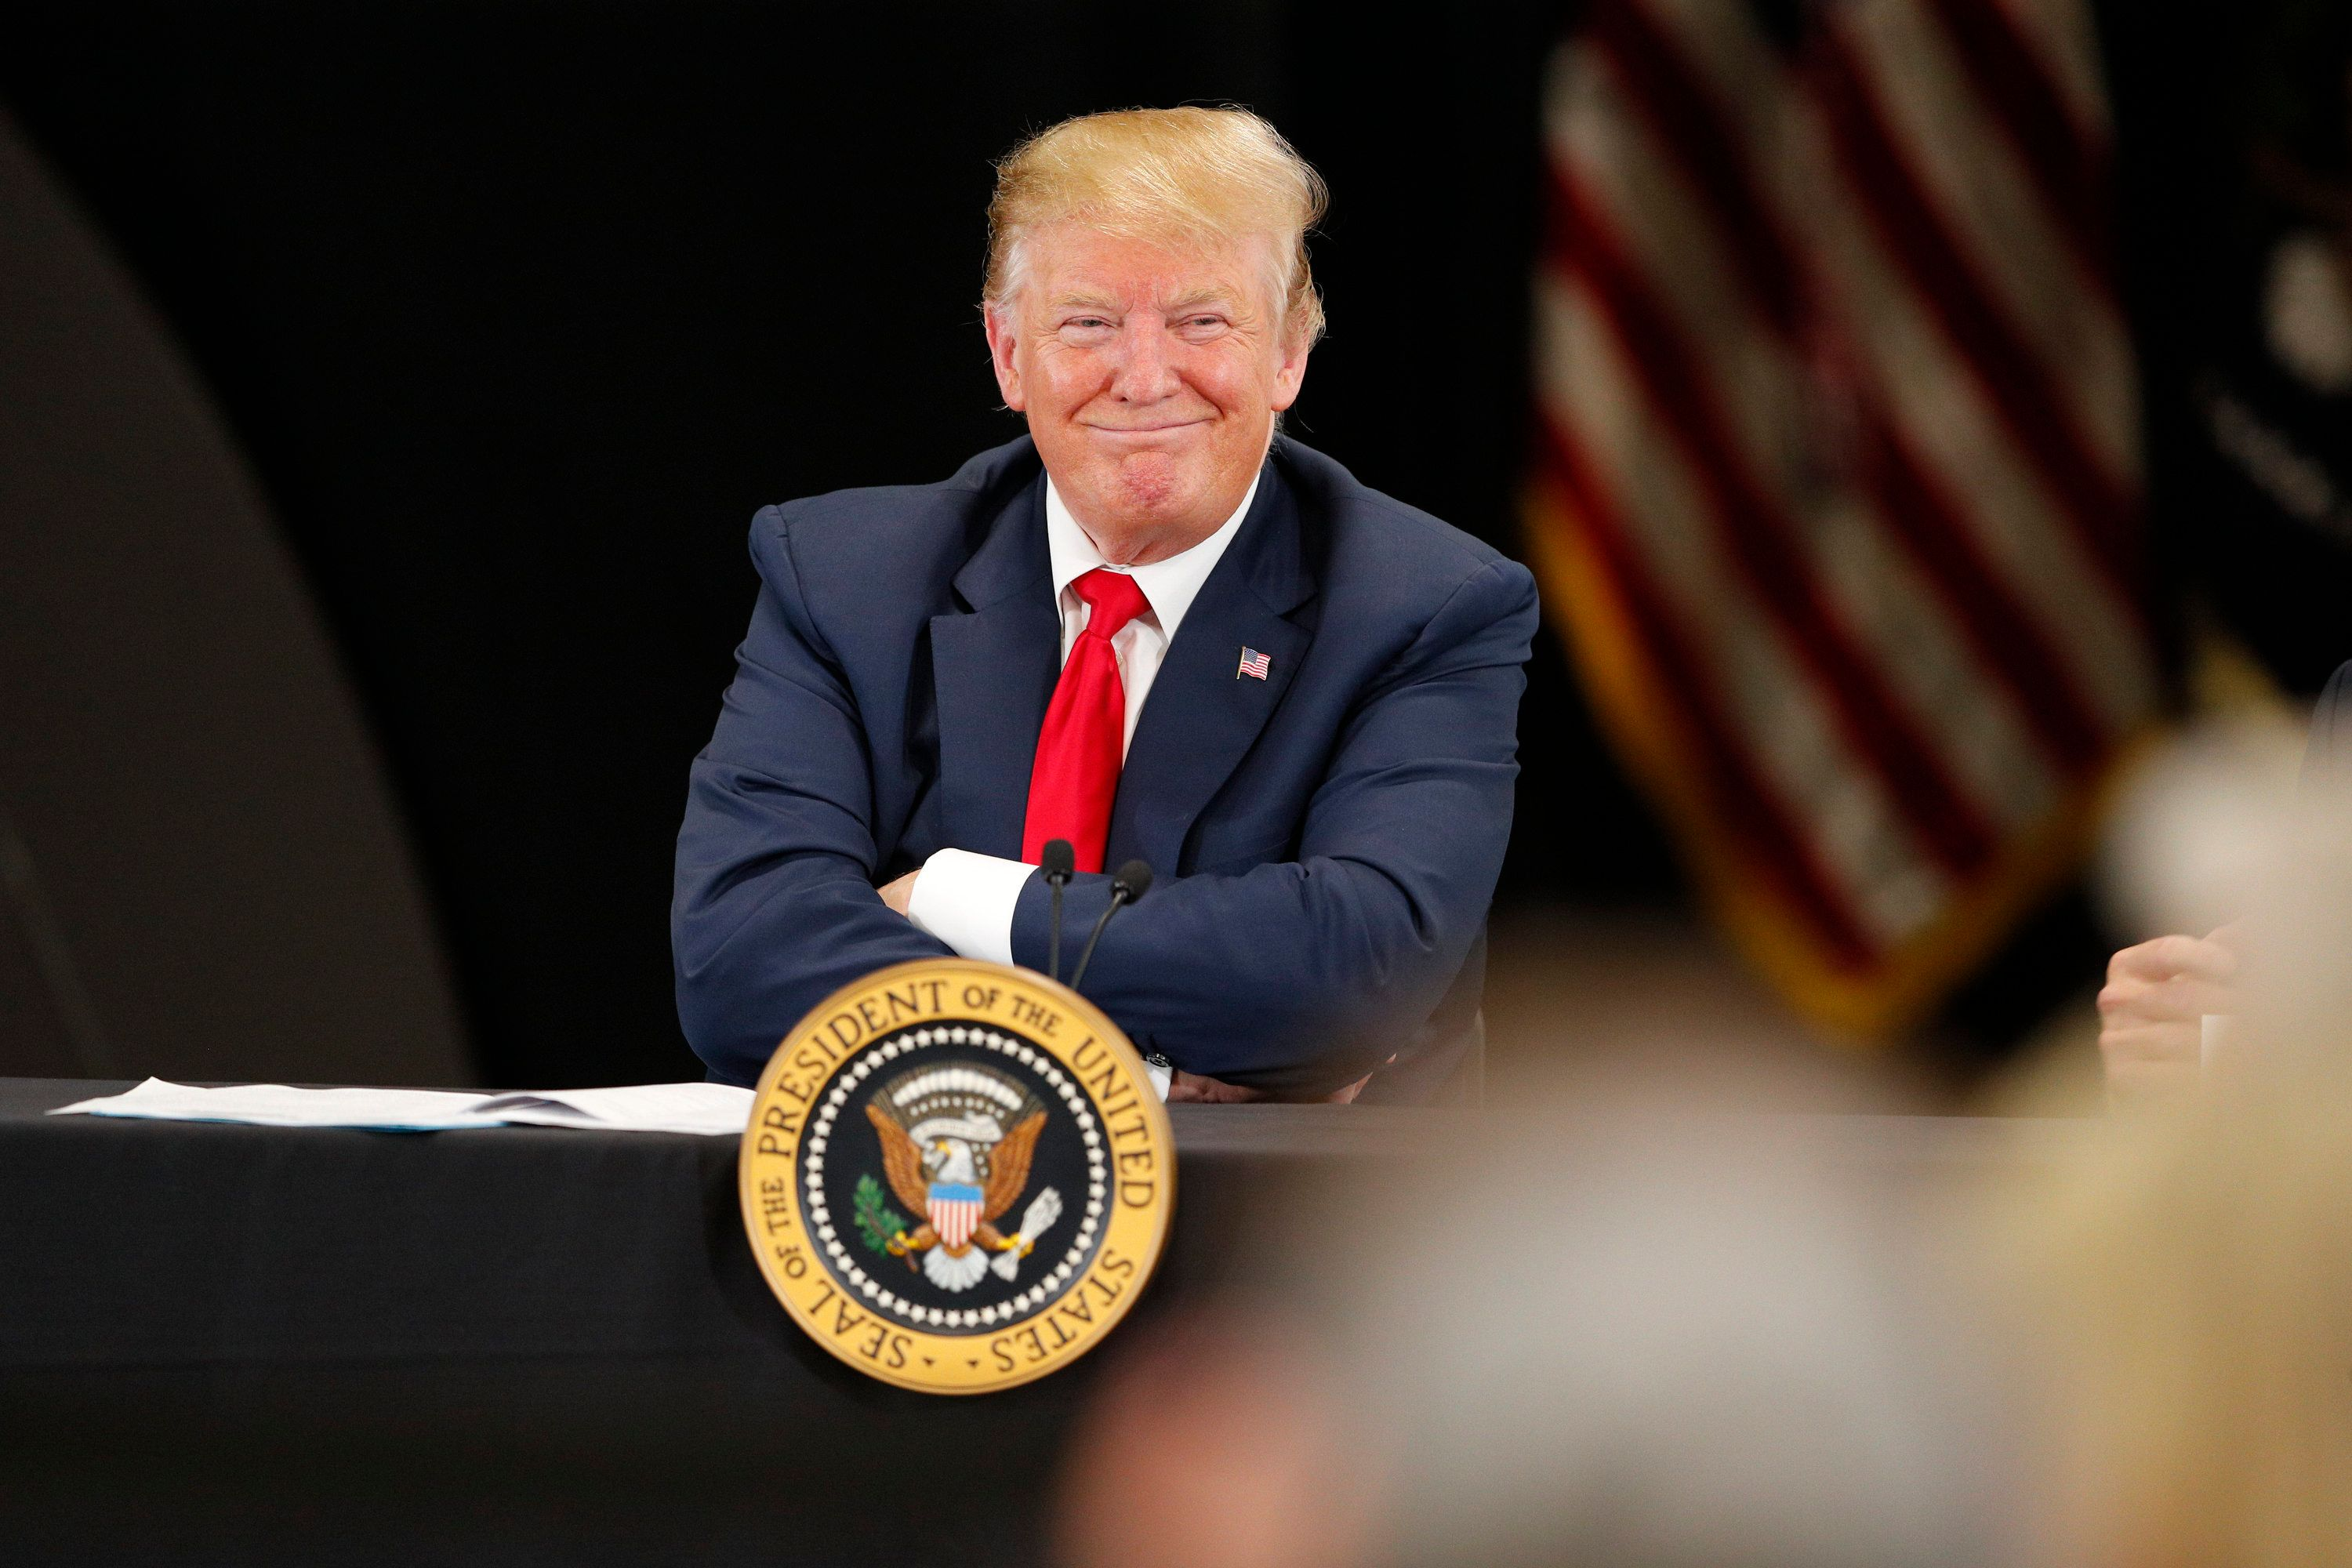 BURNSVILLE, MN - APRIL 15: U.S. President Donald Trump speaks at a roundtable on the economy and tax reform at Nuss Trucking and Equipment on April 15, 2019 in Burnsville, Minnesota. At the special Tax Day roundtable Trump gave a defense of his 2017 tax cuts.(Photo by Adam Bettcher/Getty Images)